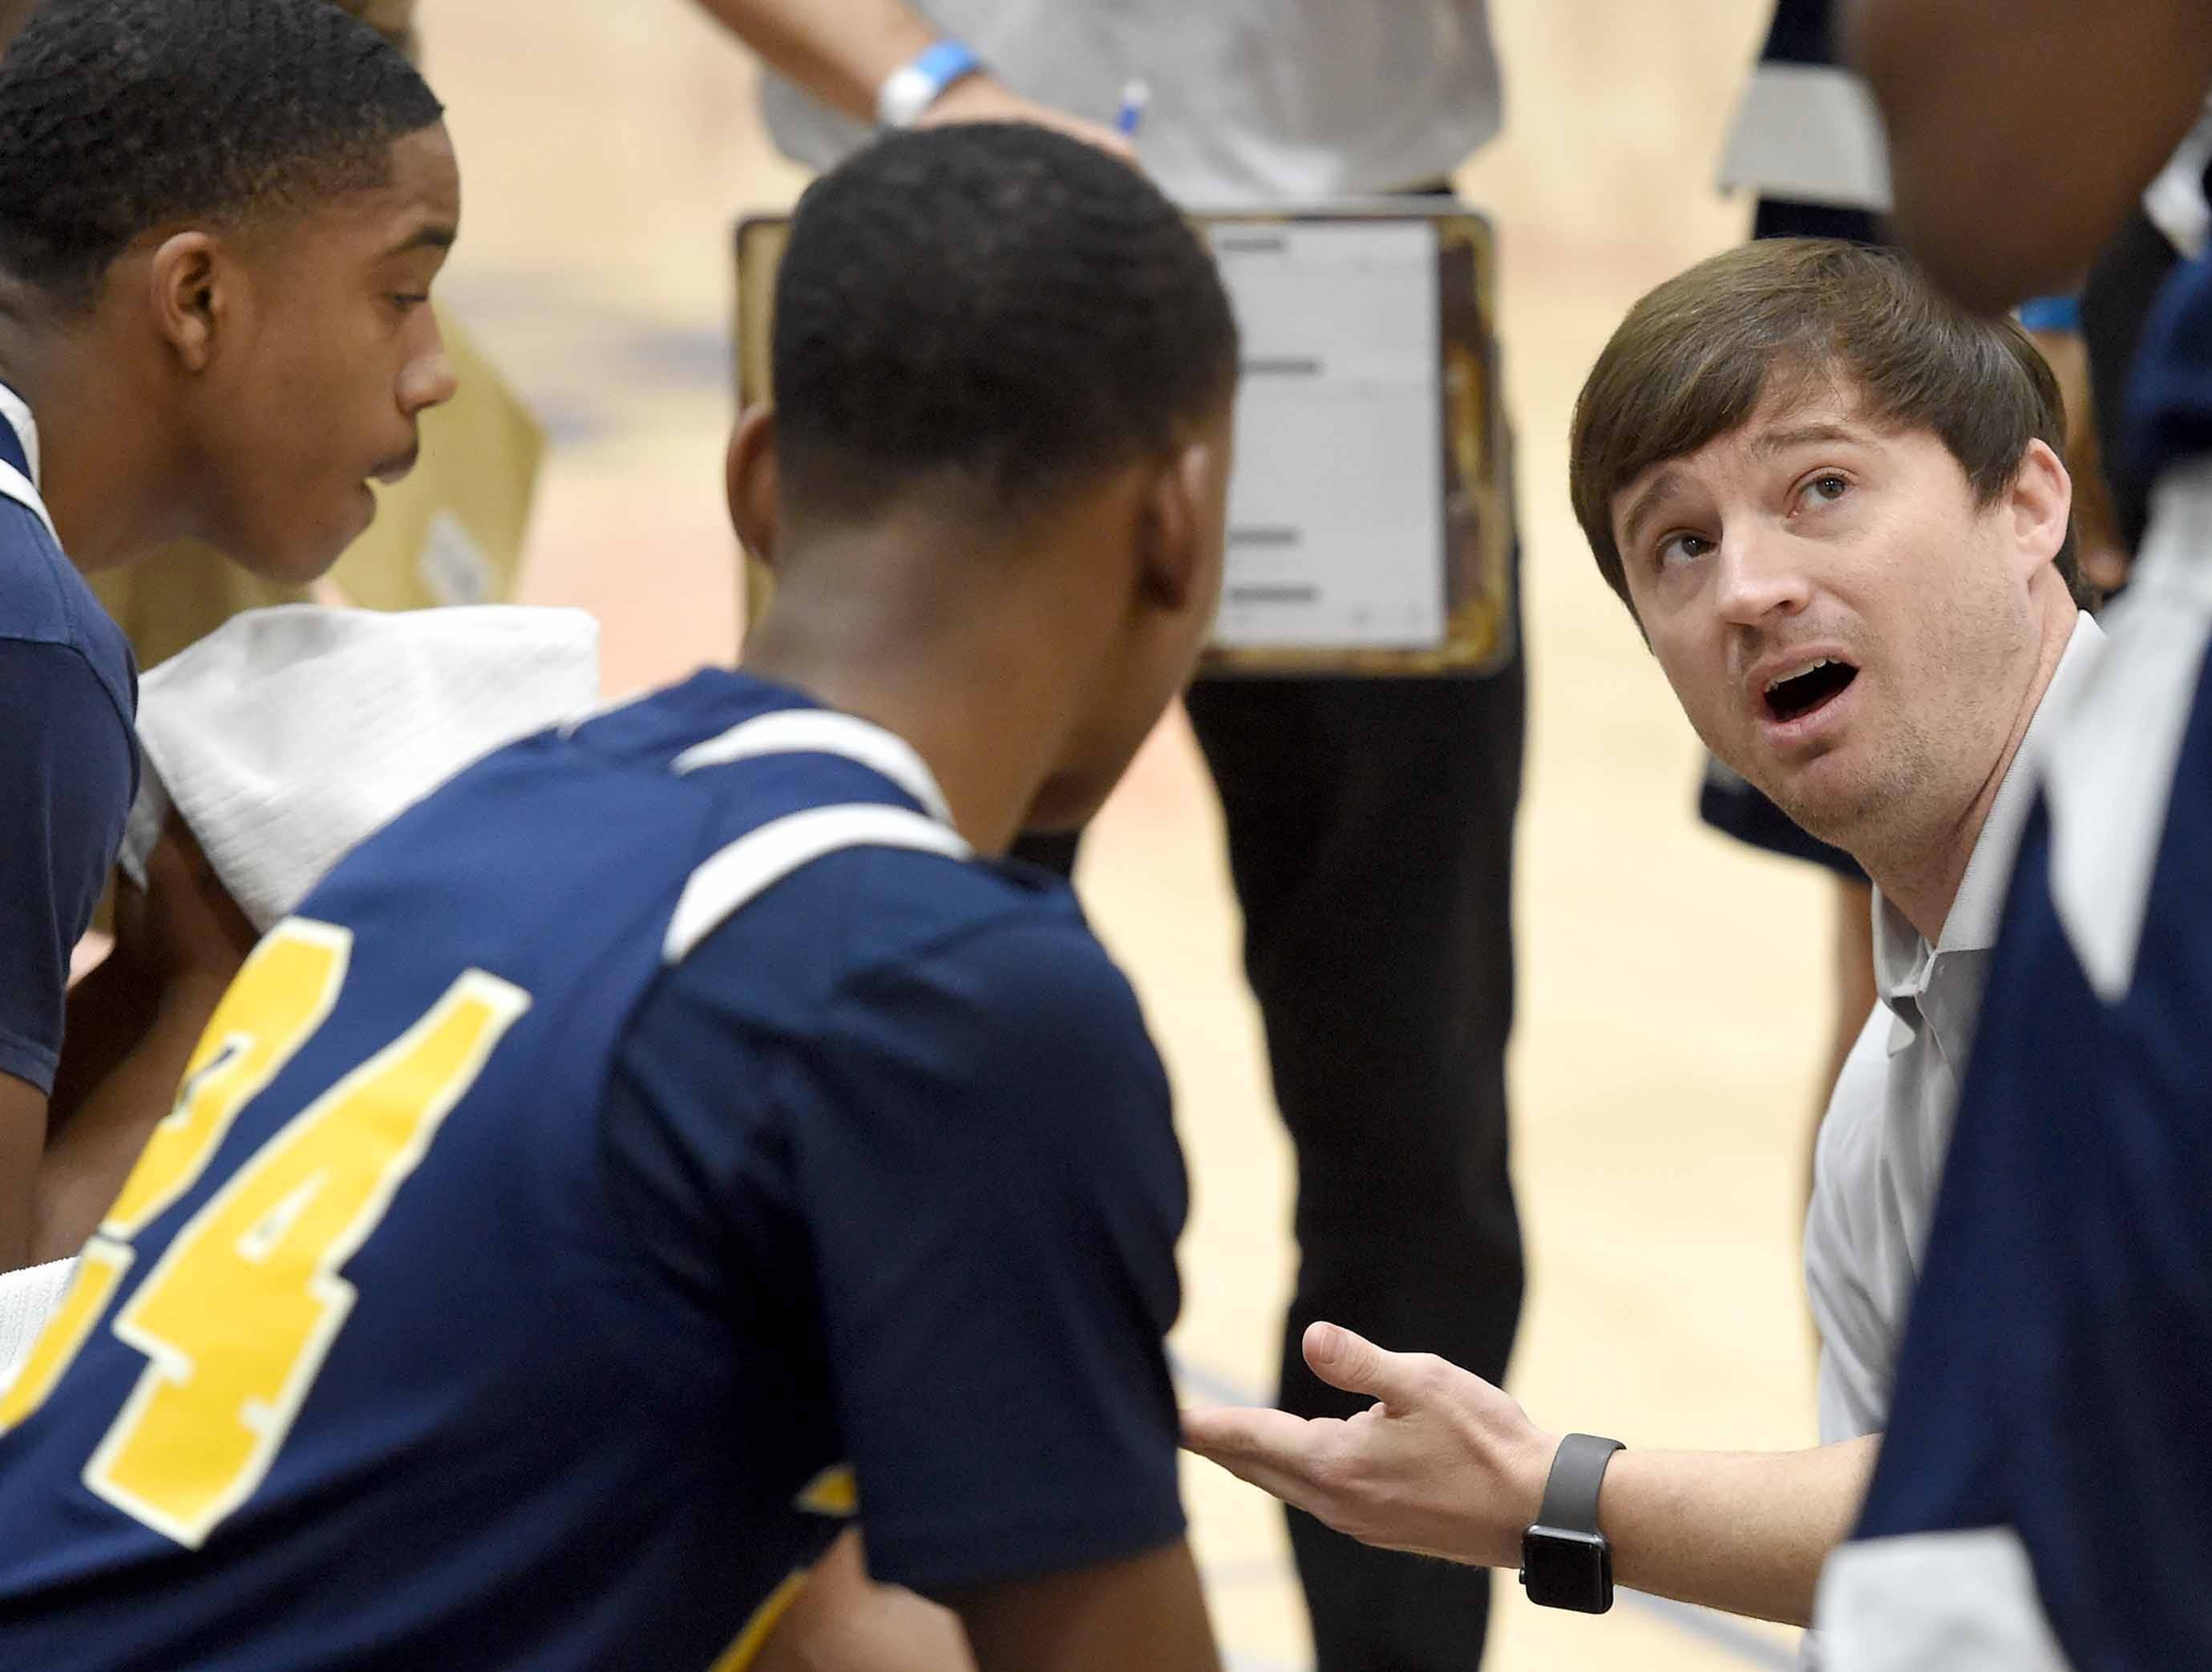 St. Joseph head coach Michael Howell talks to the Bruins during a time out on Monday, January 21, 2019, at the Rumble in the South high school basketball tournament at St. Andrew's Episcopal School in Ridgeland, Miss.